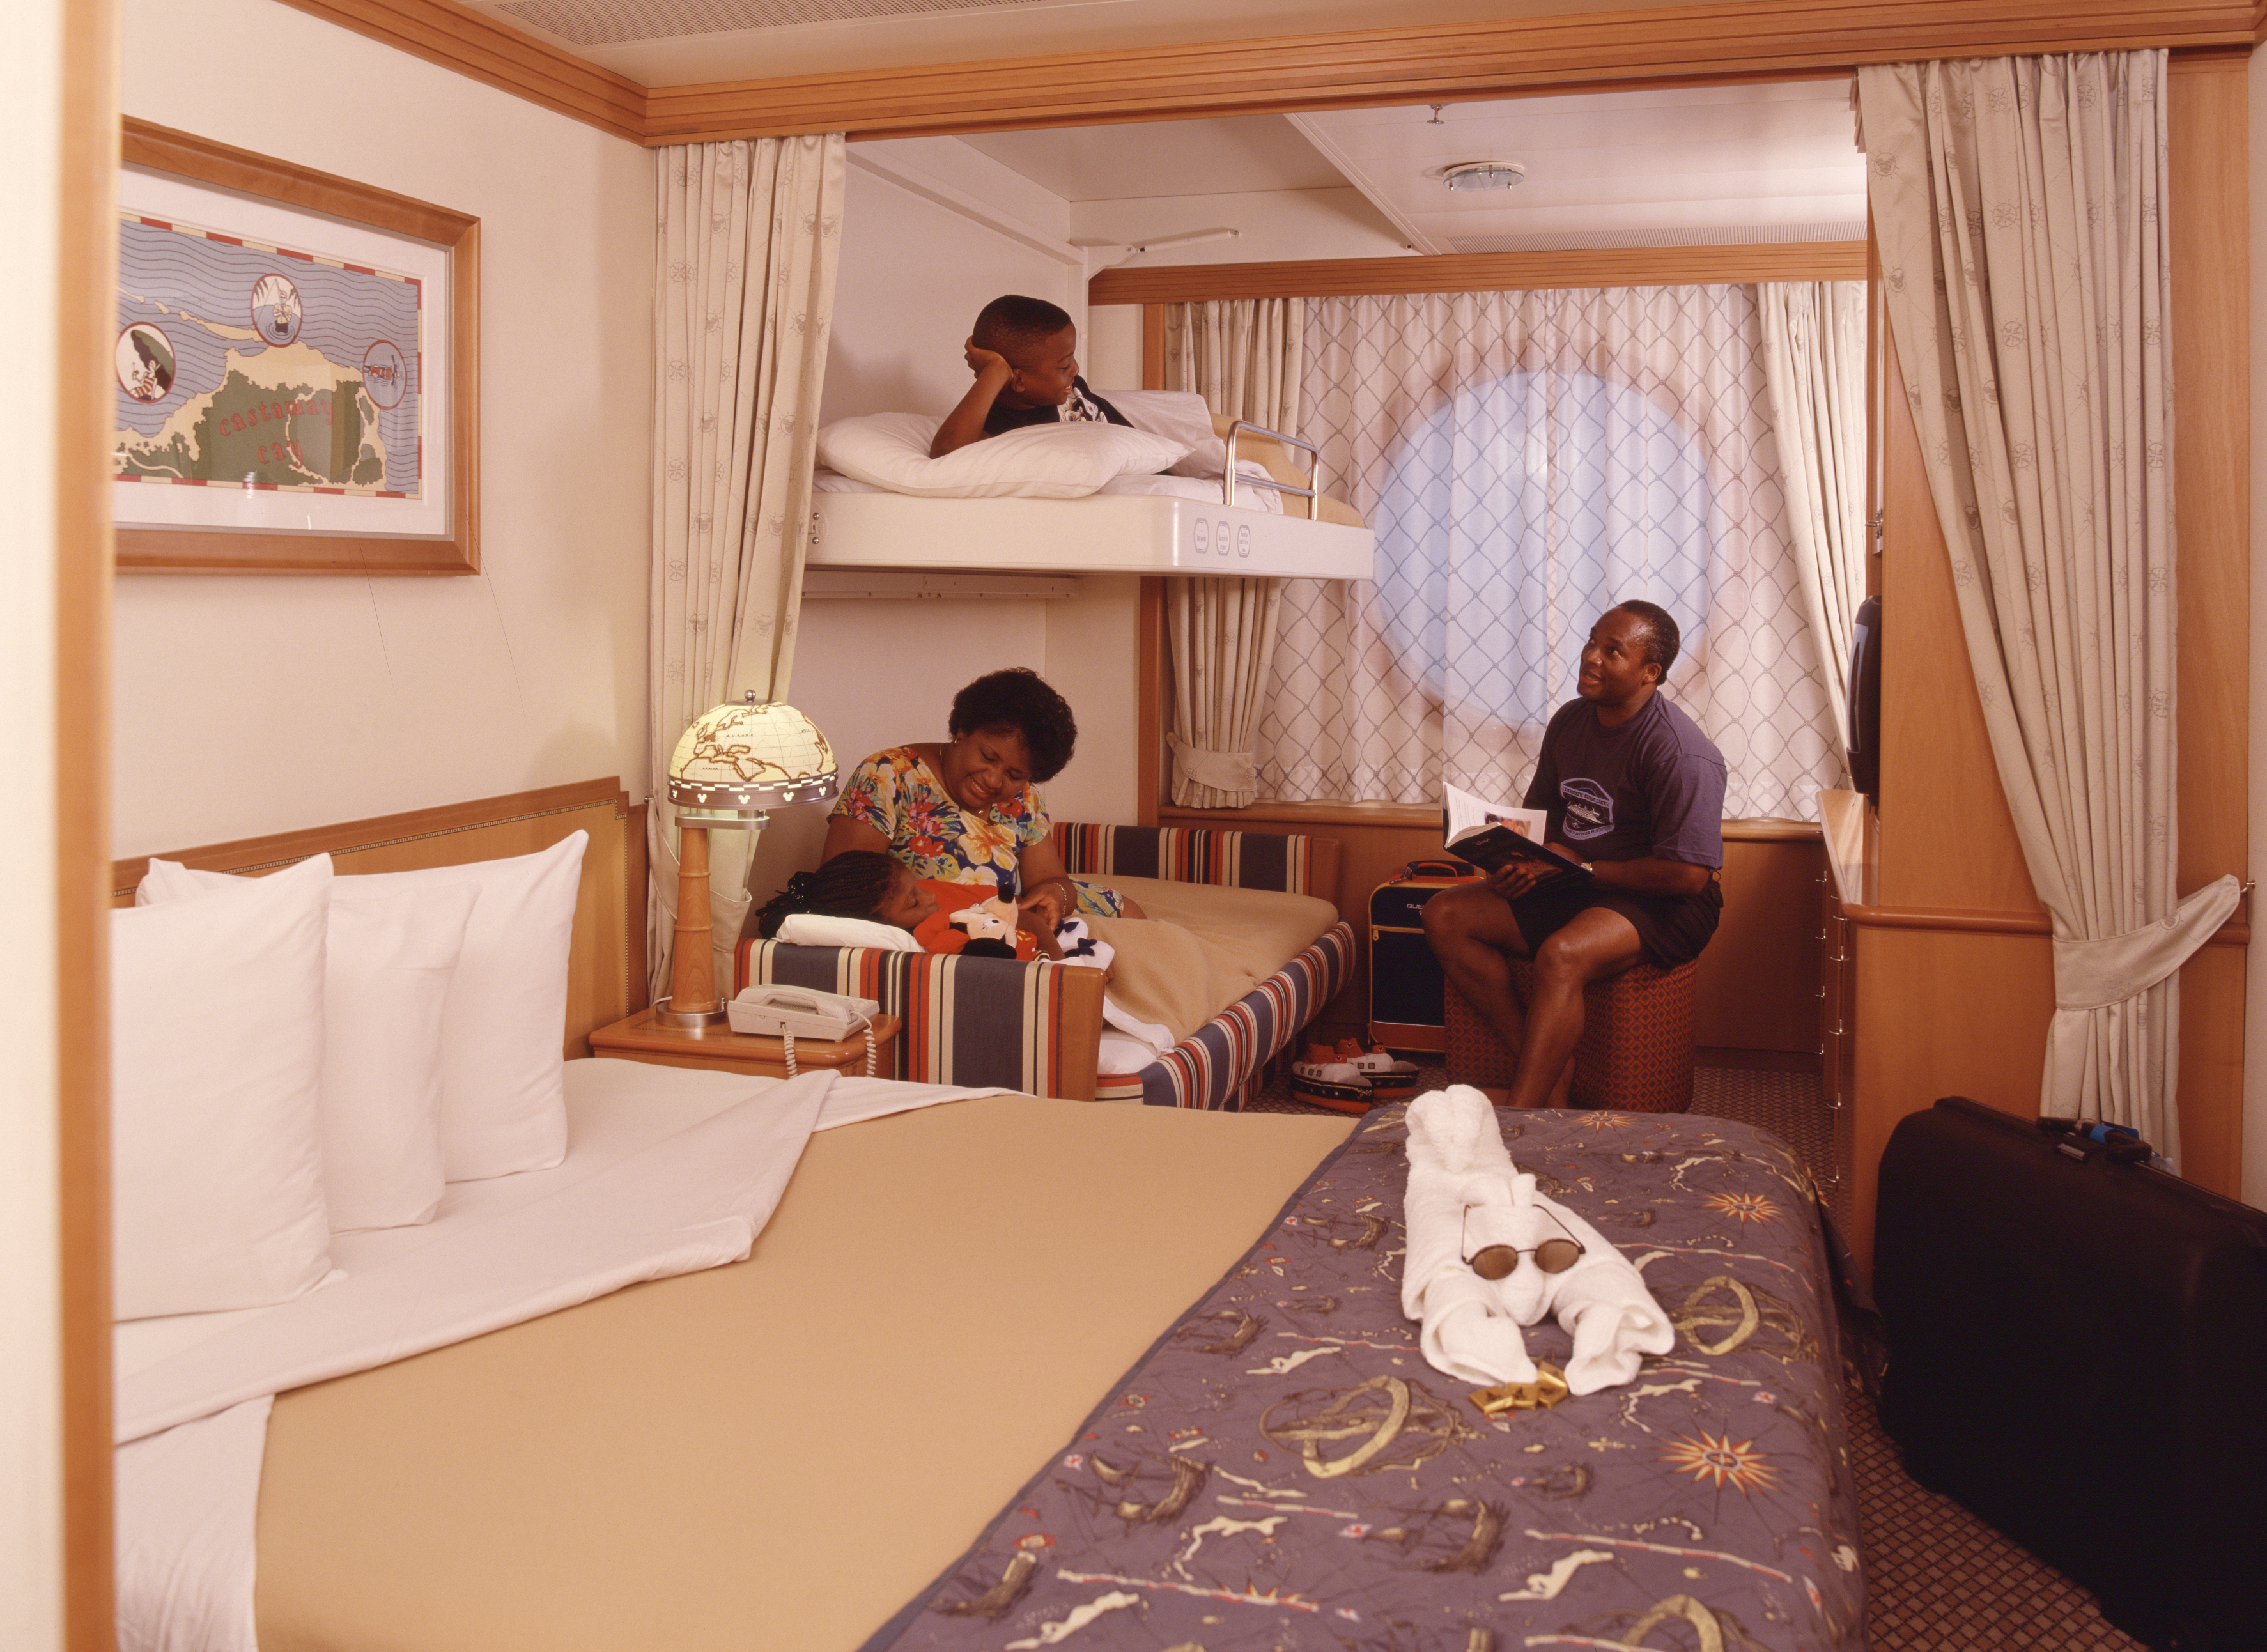 Disney Cruise Line Accommodation Category 9 Deluxe Oceanview Stateroom.jpg